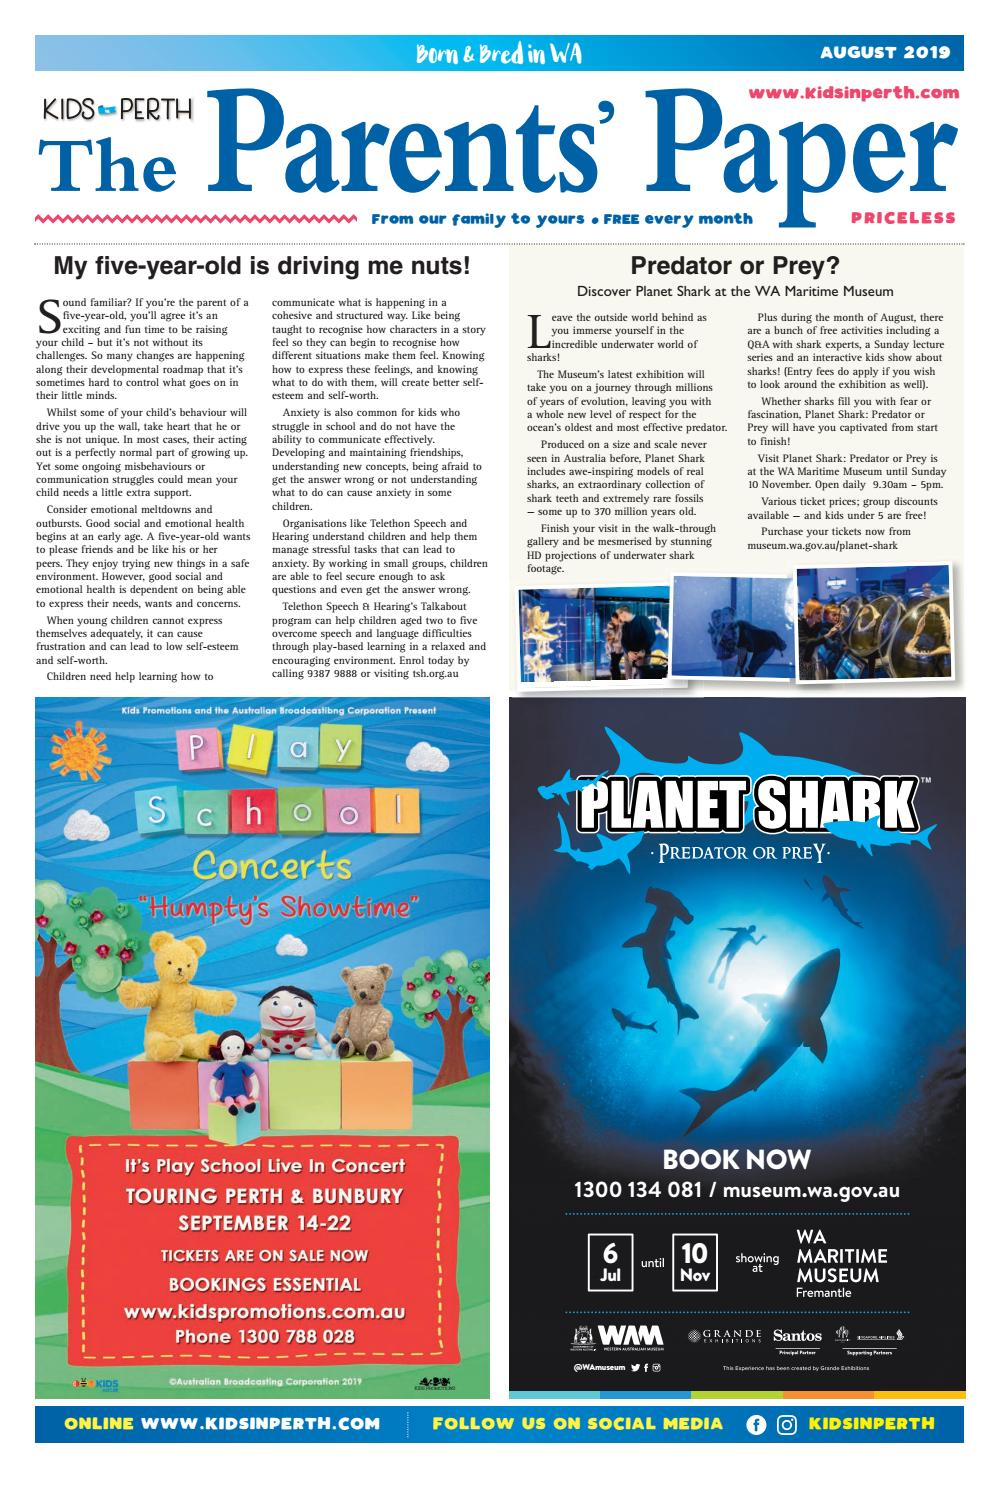 Kids in Perth - The Parents' Paper August 2019 by Kids in